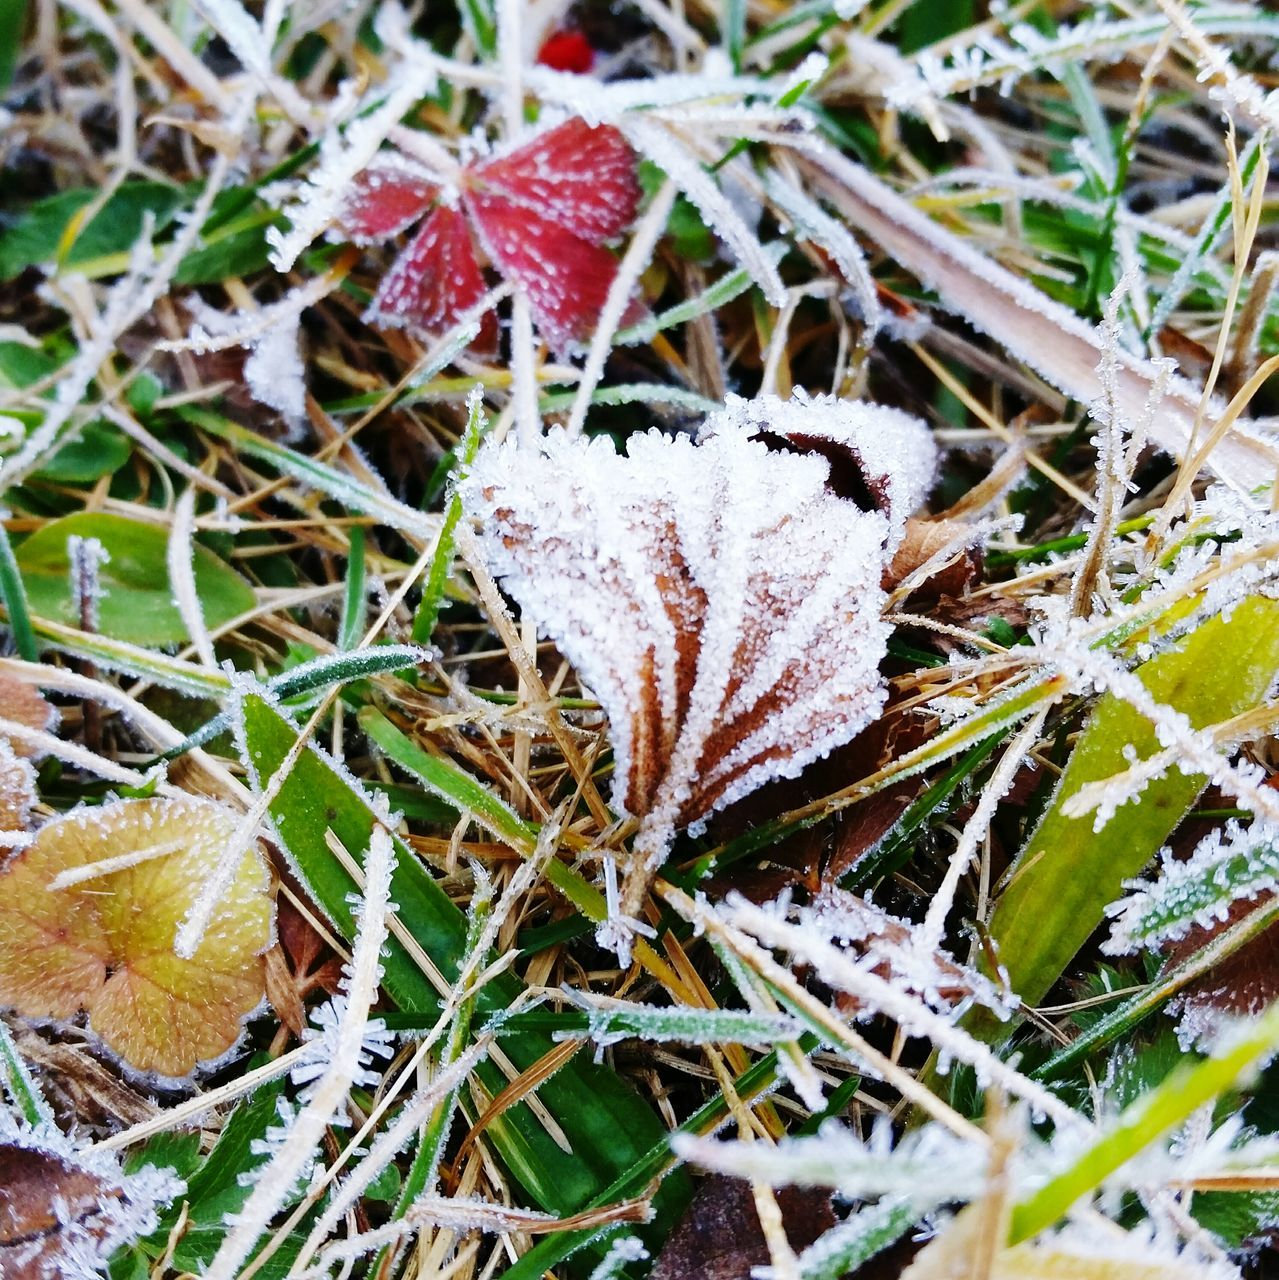 cold temperature, winter, snow, nature, leaf, day, frozen, weather, no people, high angle view, field, outdoors, close-up, beauty in nature, fragility